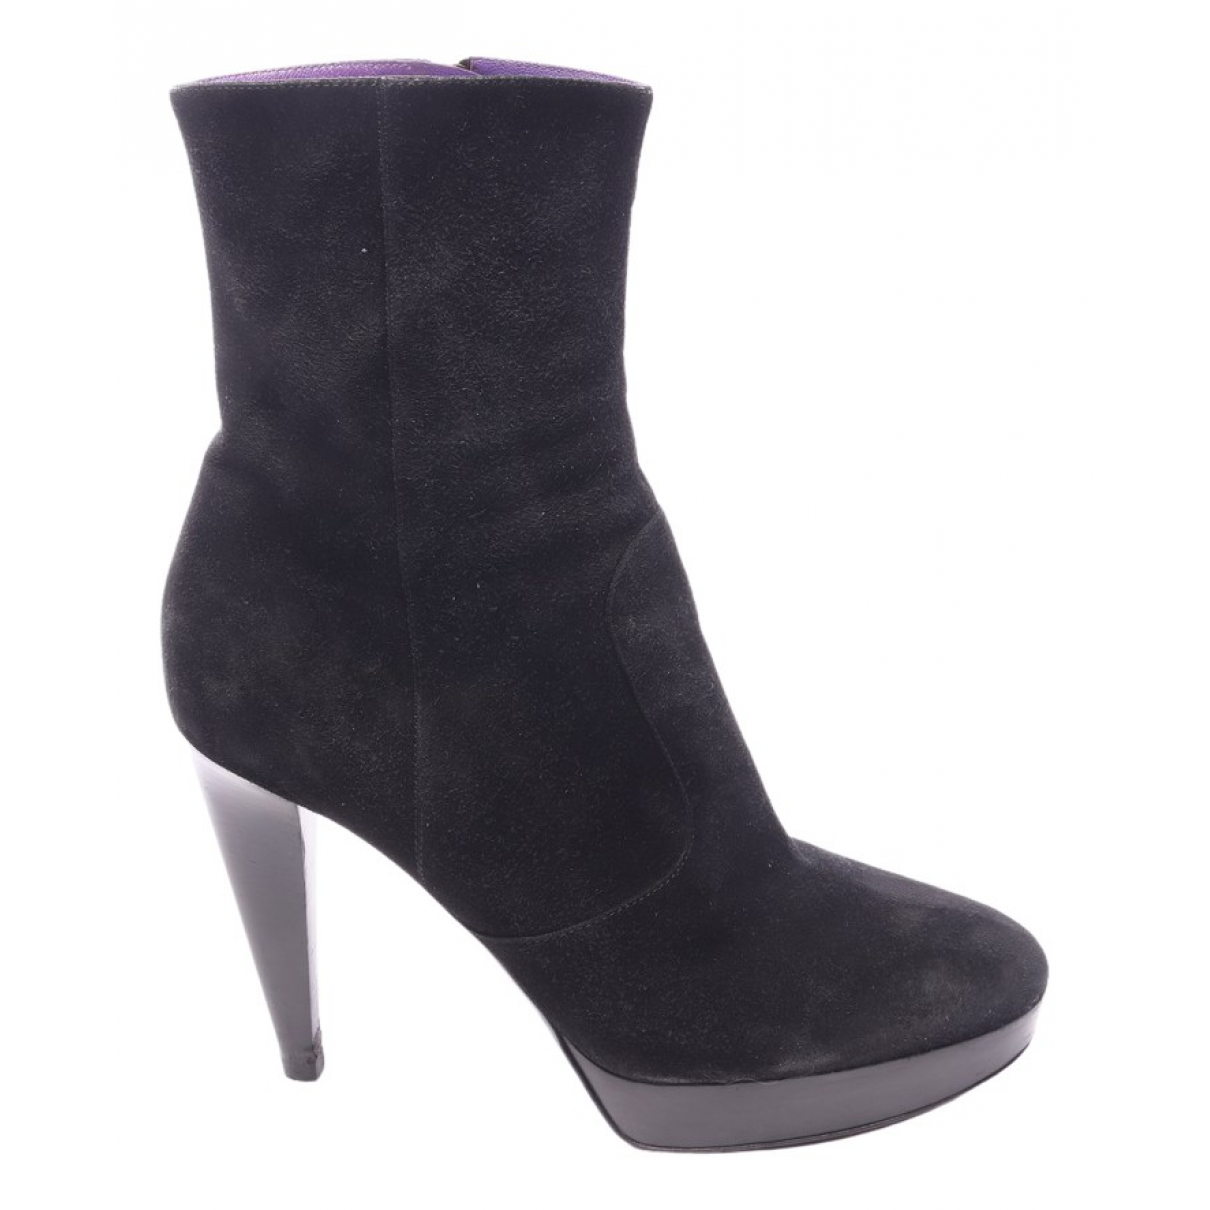 Sergio Rossi \N Black Leather Ankle boots for Women 39.5 EU